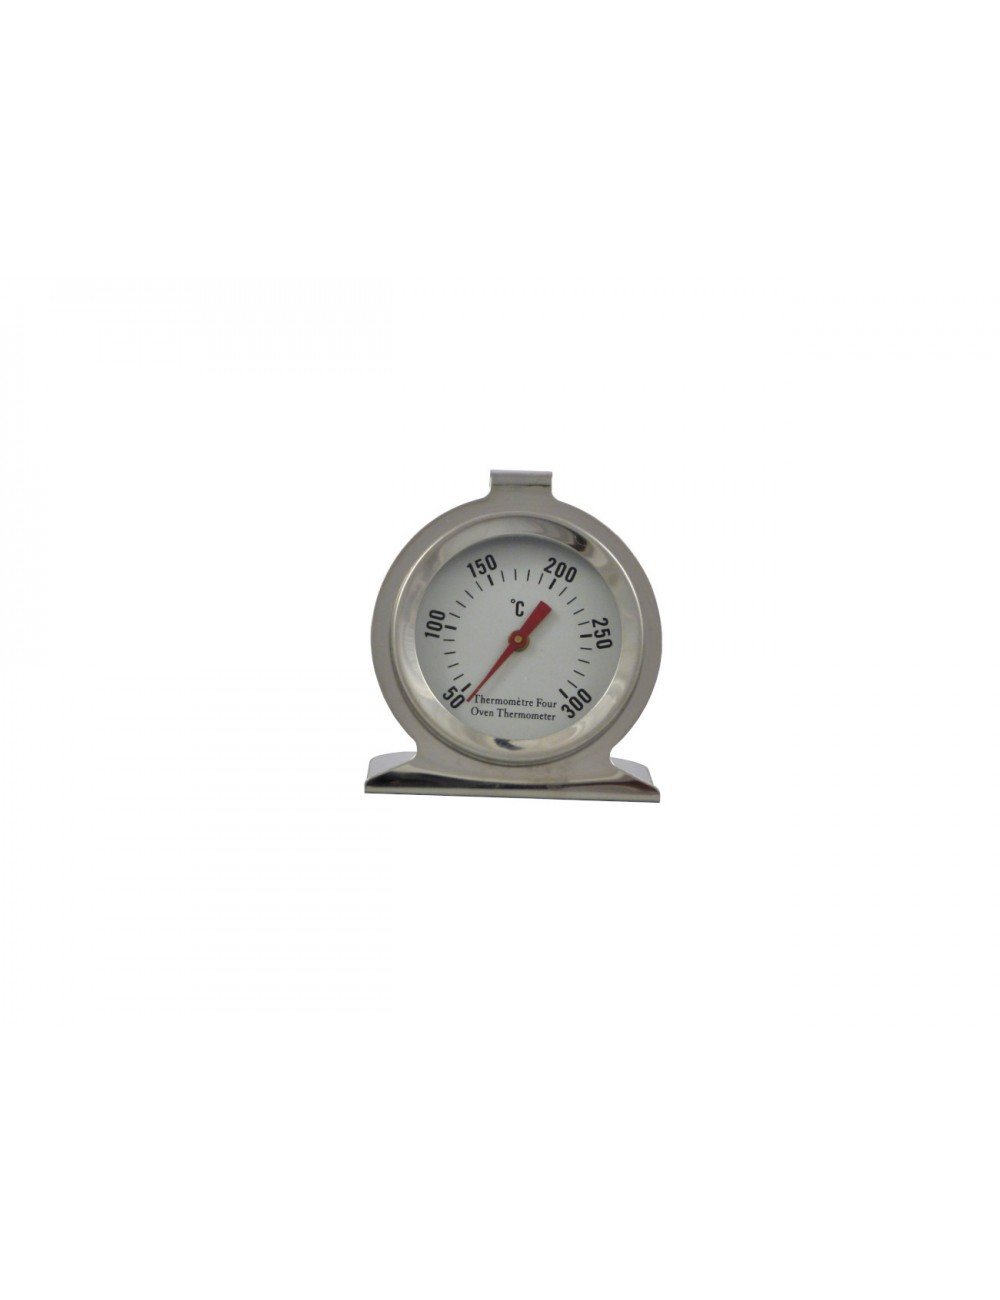 THERMOMETER FOR THE OVEN WITH NEEDLE AND DIAL